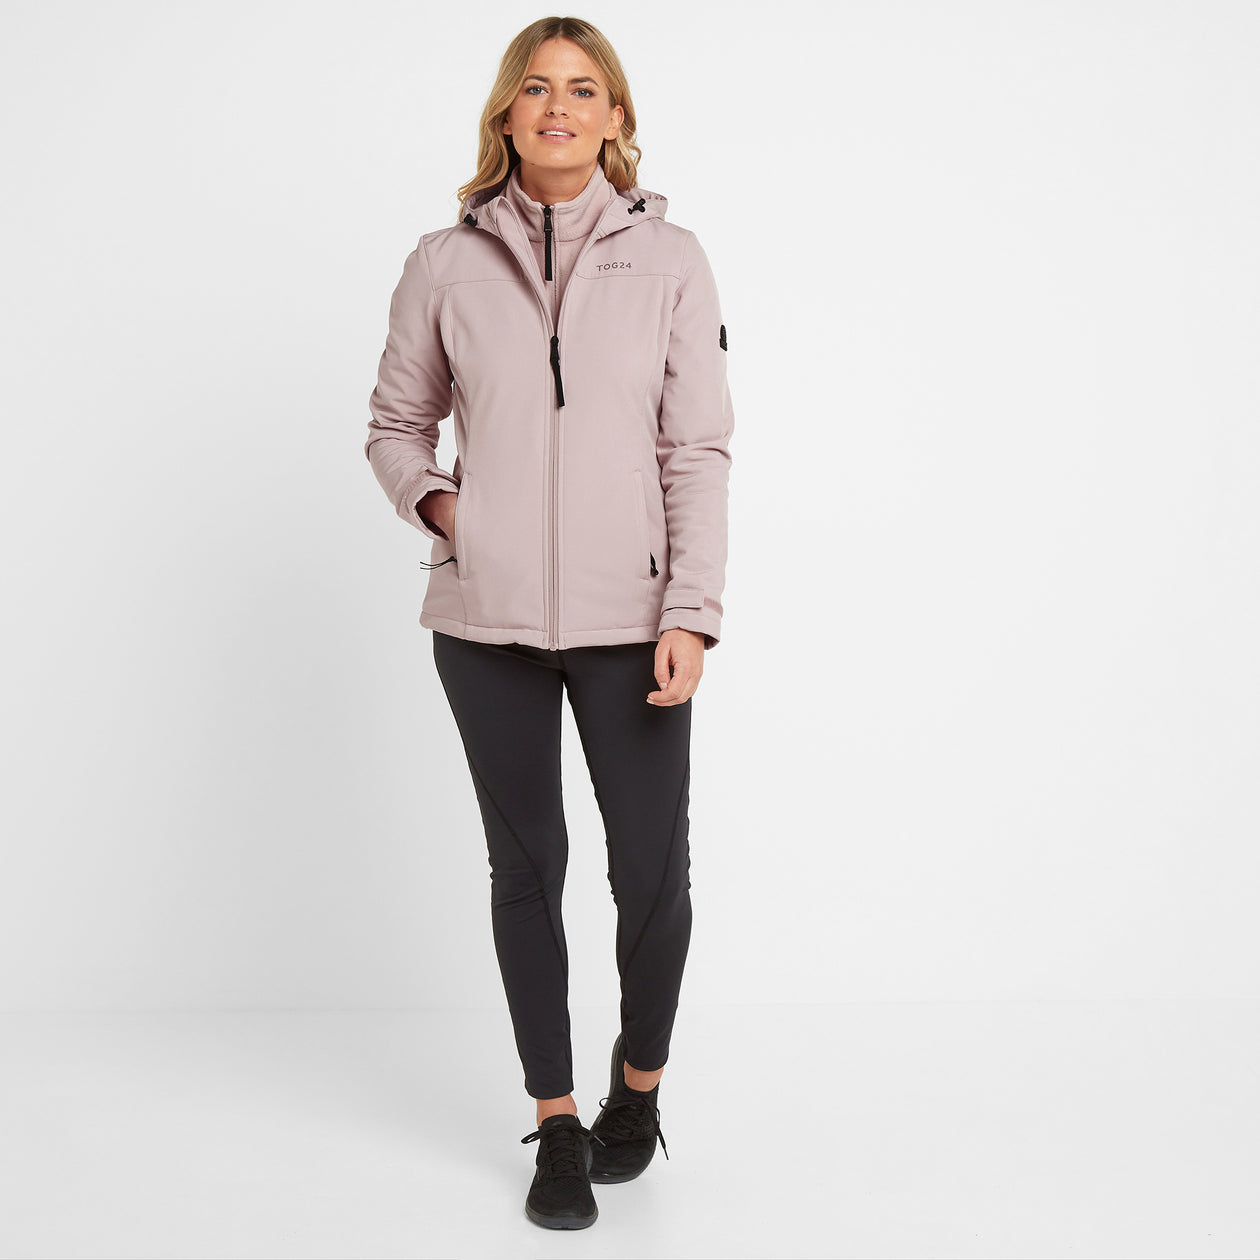 Keld Womens Softshell Hooded Jacket - Dusky Pink image 4